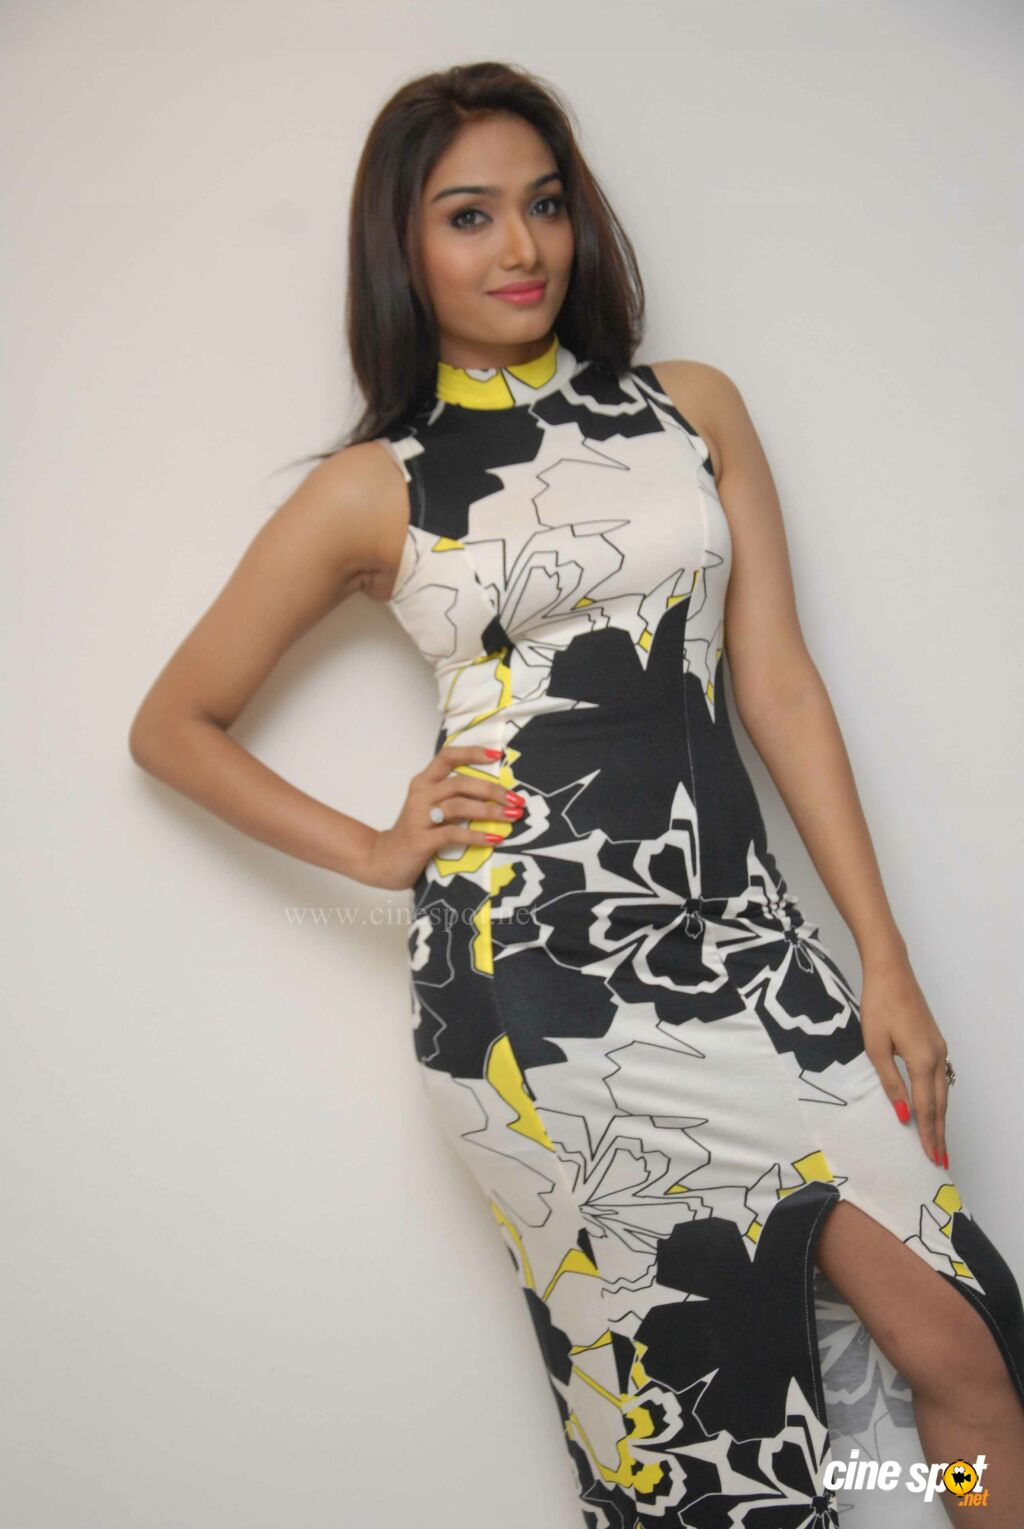 aishwarya devan height